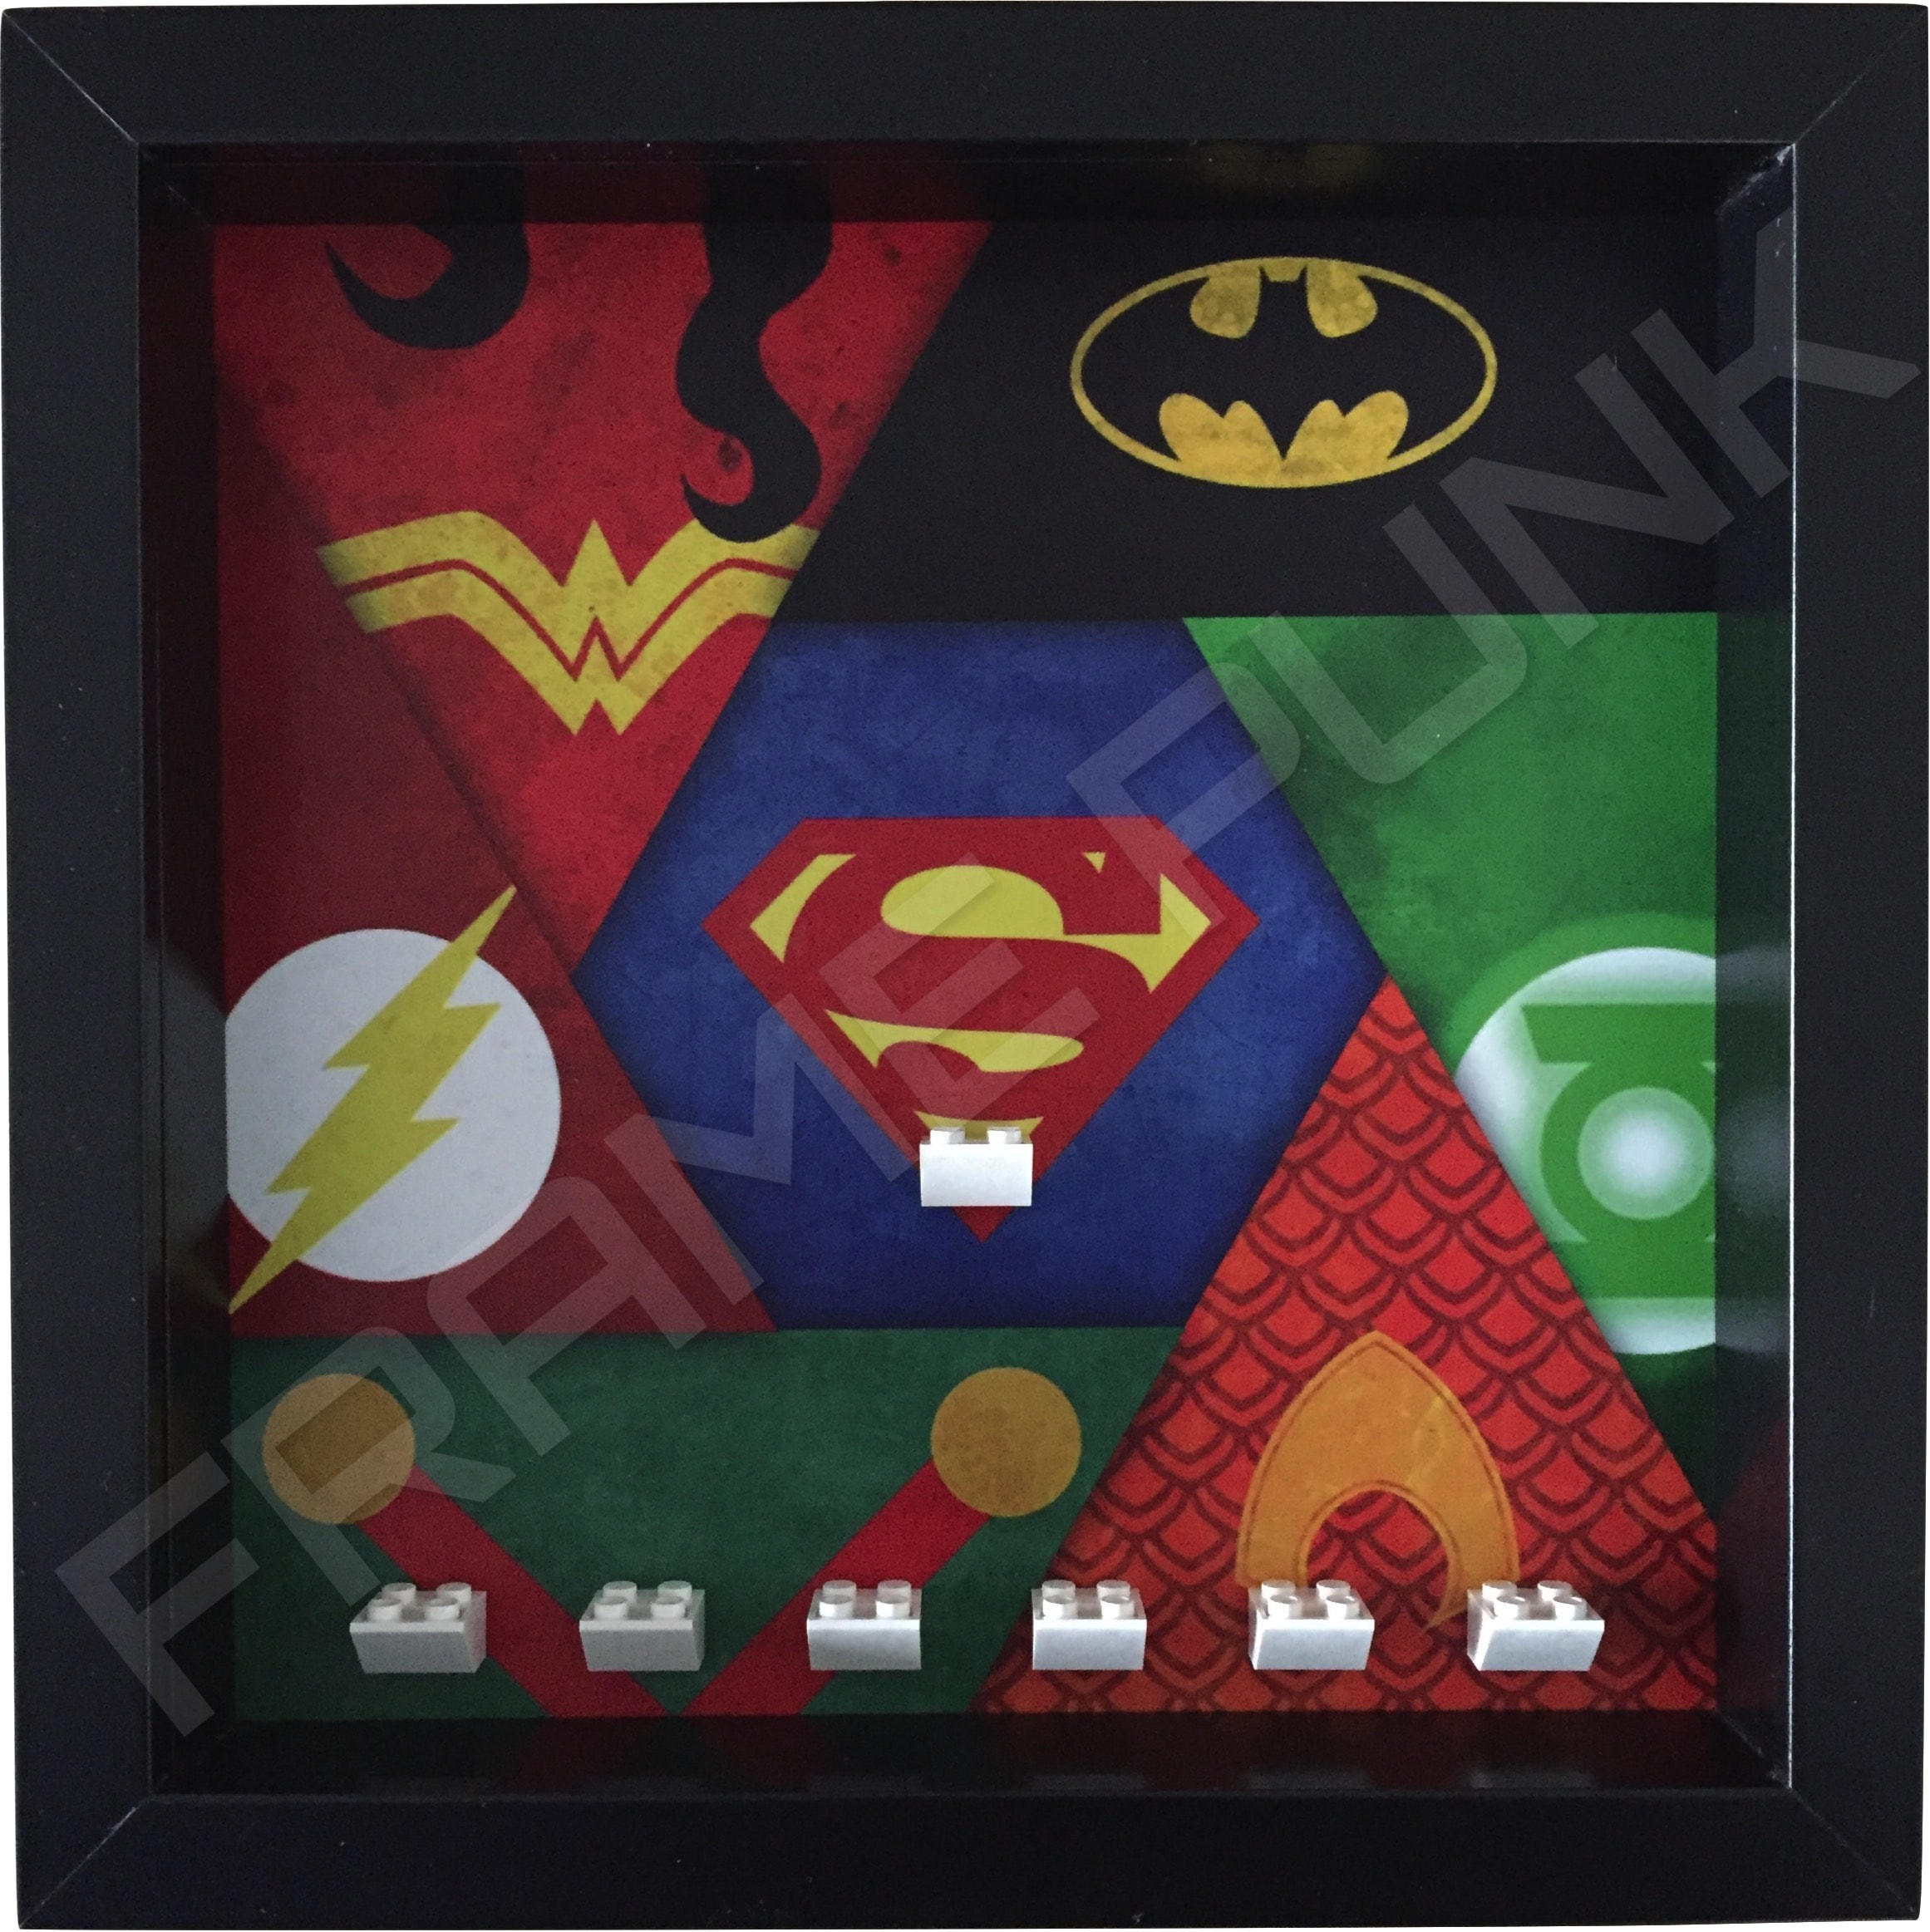 Justice League Black Frame minifigures display